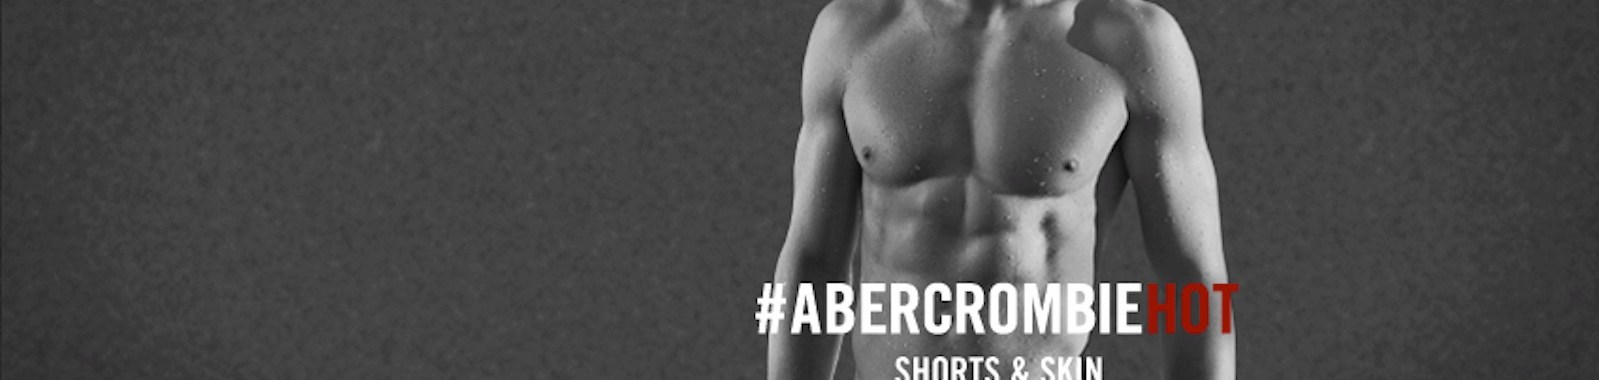 abercrombie-banner